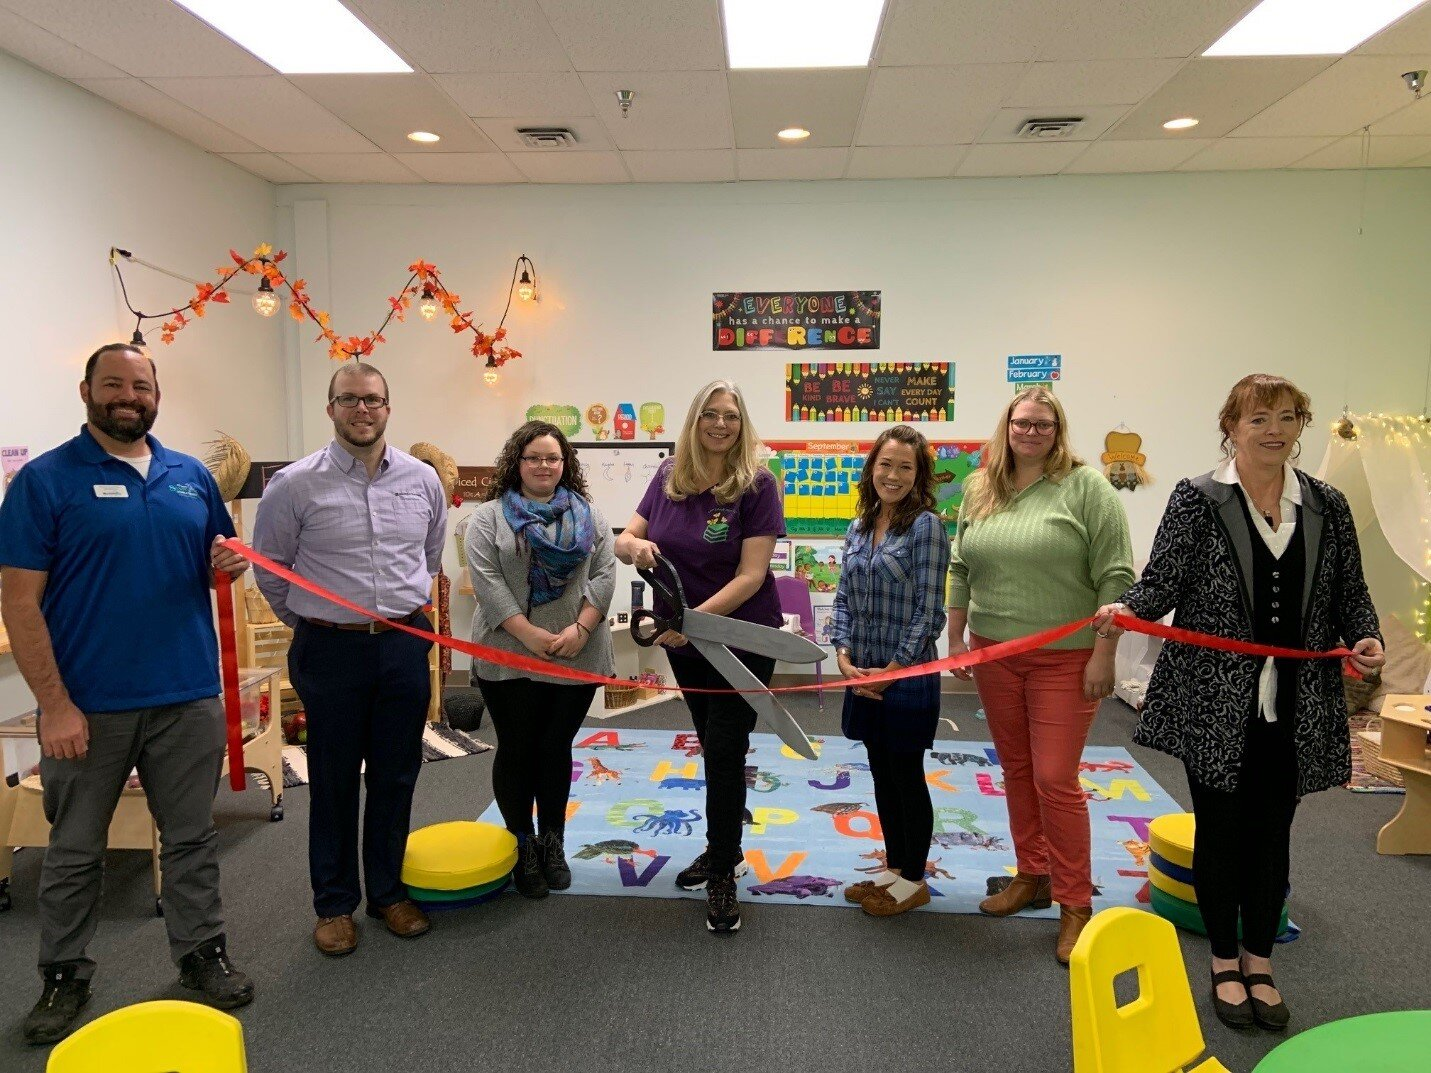 Greater Sandpoint Chamber of Commerce staff and ambassadors with Sandpoint Preschool Academy staff at their Ribbon Cutting on September 19, 2019.. From left to right: Steve Sanchez, Connor Currie, Caitlyn Hagen, Tana Vanderholm, Amy Bieda, Ricci Witte, Patricia Walker.